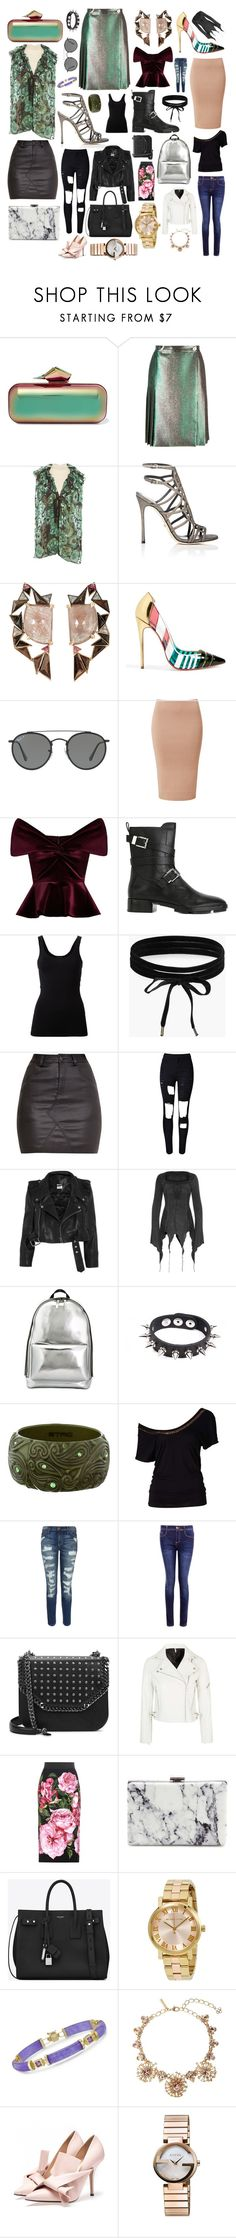 """""""Some of my favorite things #64"""" by andyarana ❤ liked on Polyvore featuring Jimmy Choo, Marco de Vincenzo, Lanvin, Sergio Rossi, Nak Armstrong, Christian Louboutin, Ray-Ban, Emilio De La Morena, Alexander Wang and Theory"""